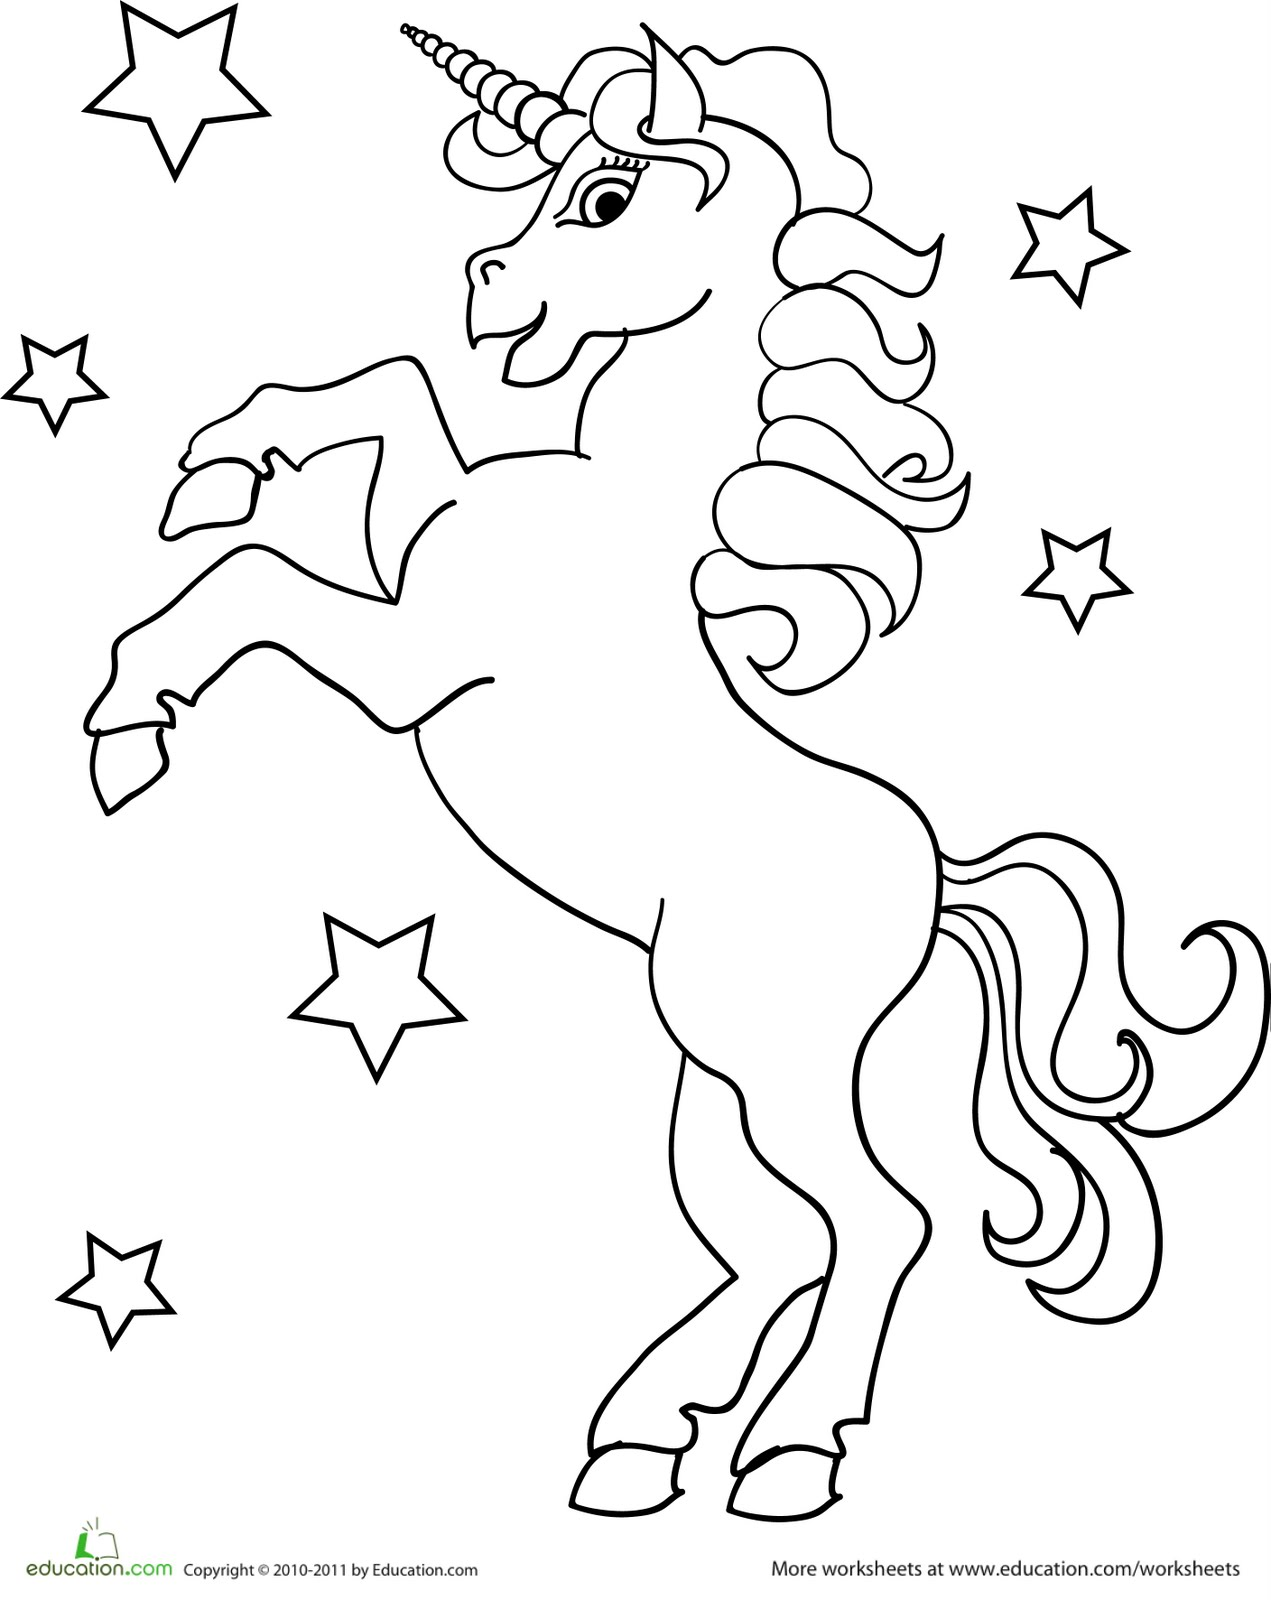 Free Unicorn Maze Coloring Pages Unicorn Coloring Pages For Printable